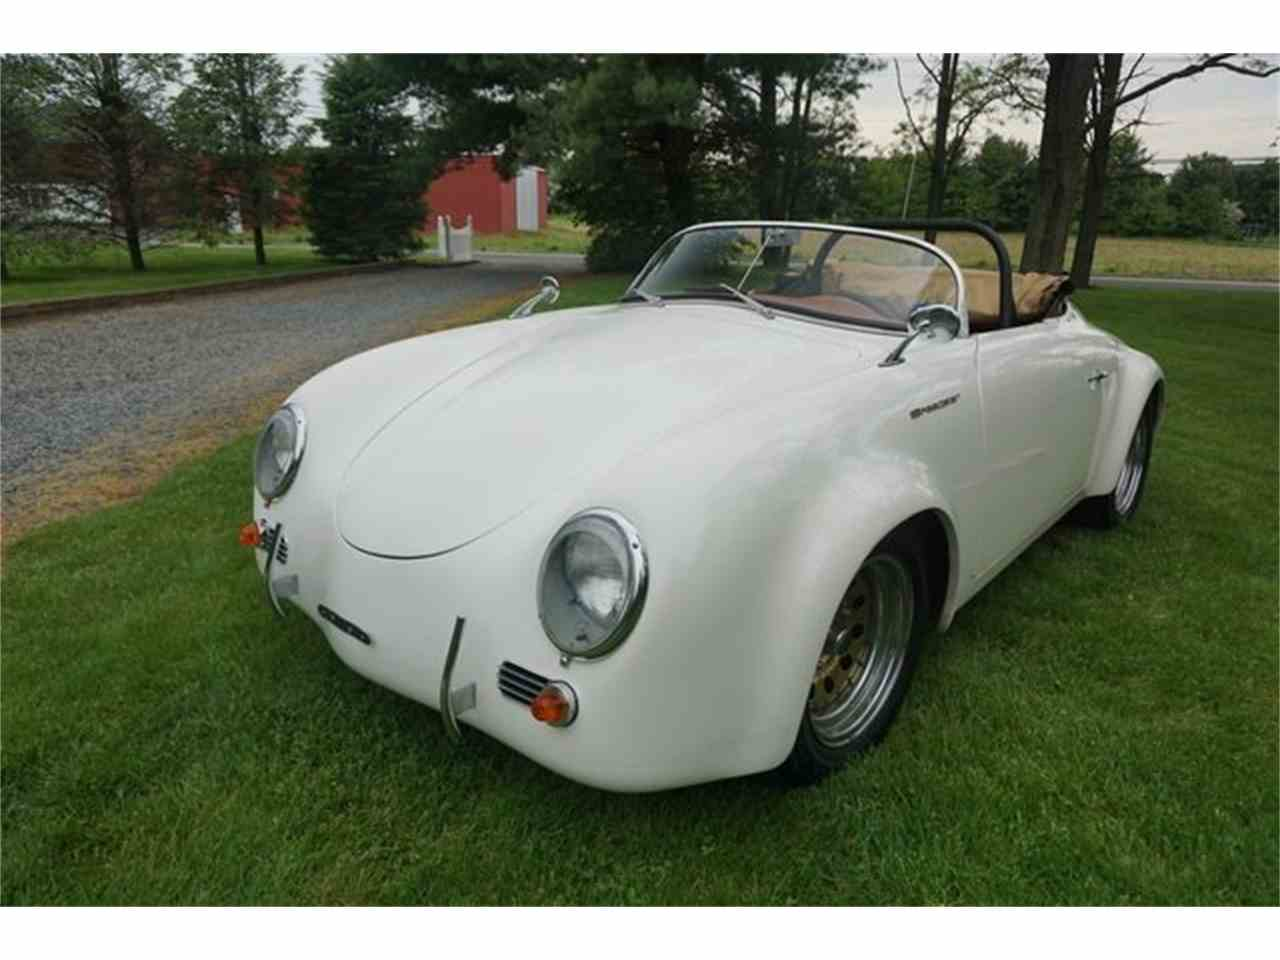 1956 porsche 356 speedster replica wide bo for sale. Black Bedroom Furniture Sets. Home Design Ideas